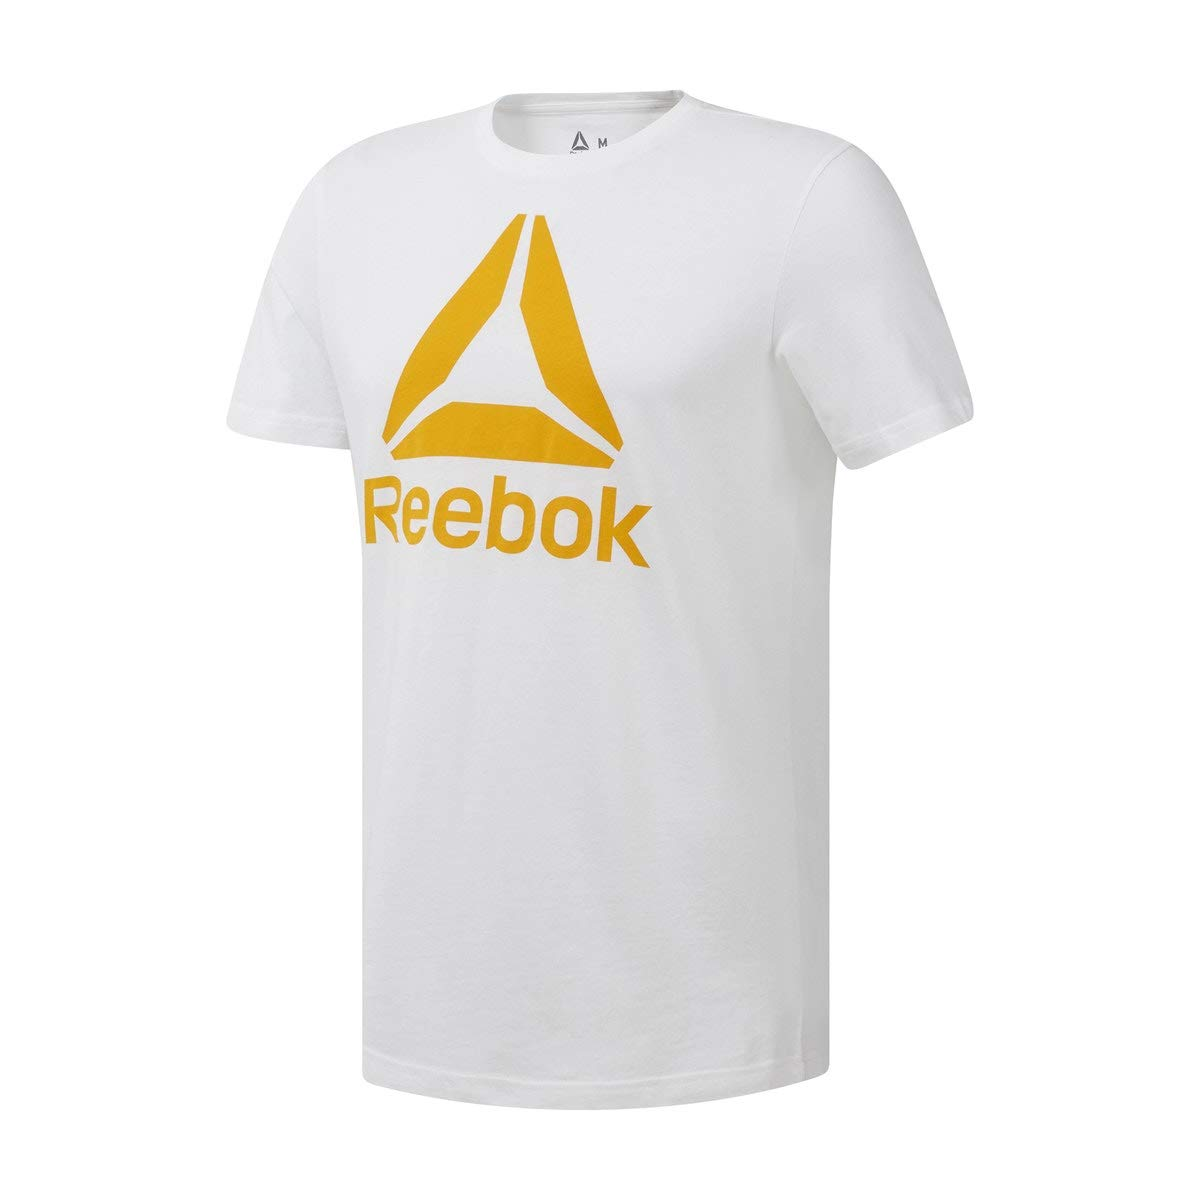 Reebok QQR Stacked DU4692 T-Shirt Sportiva Uomo